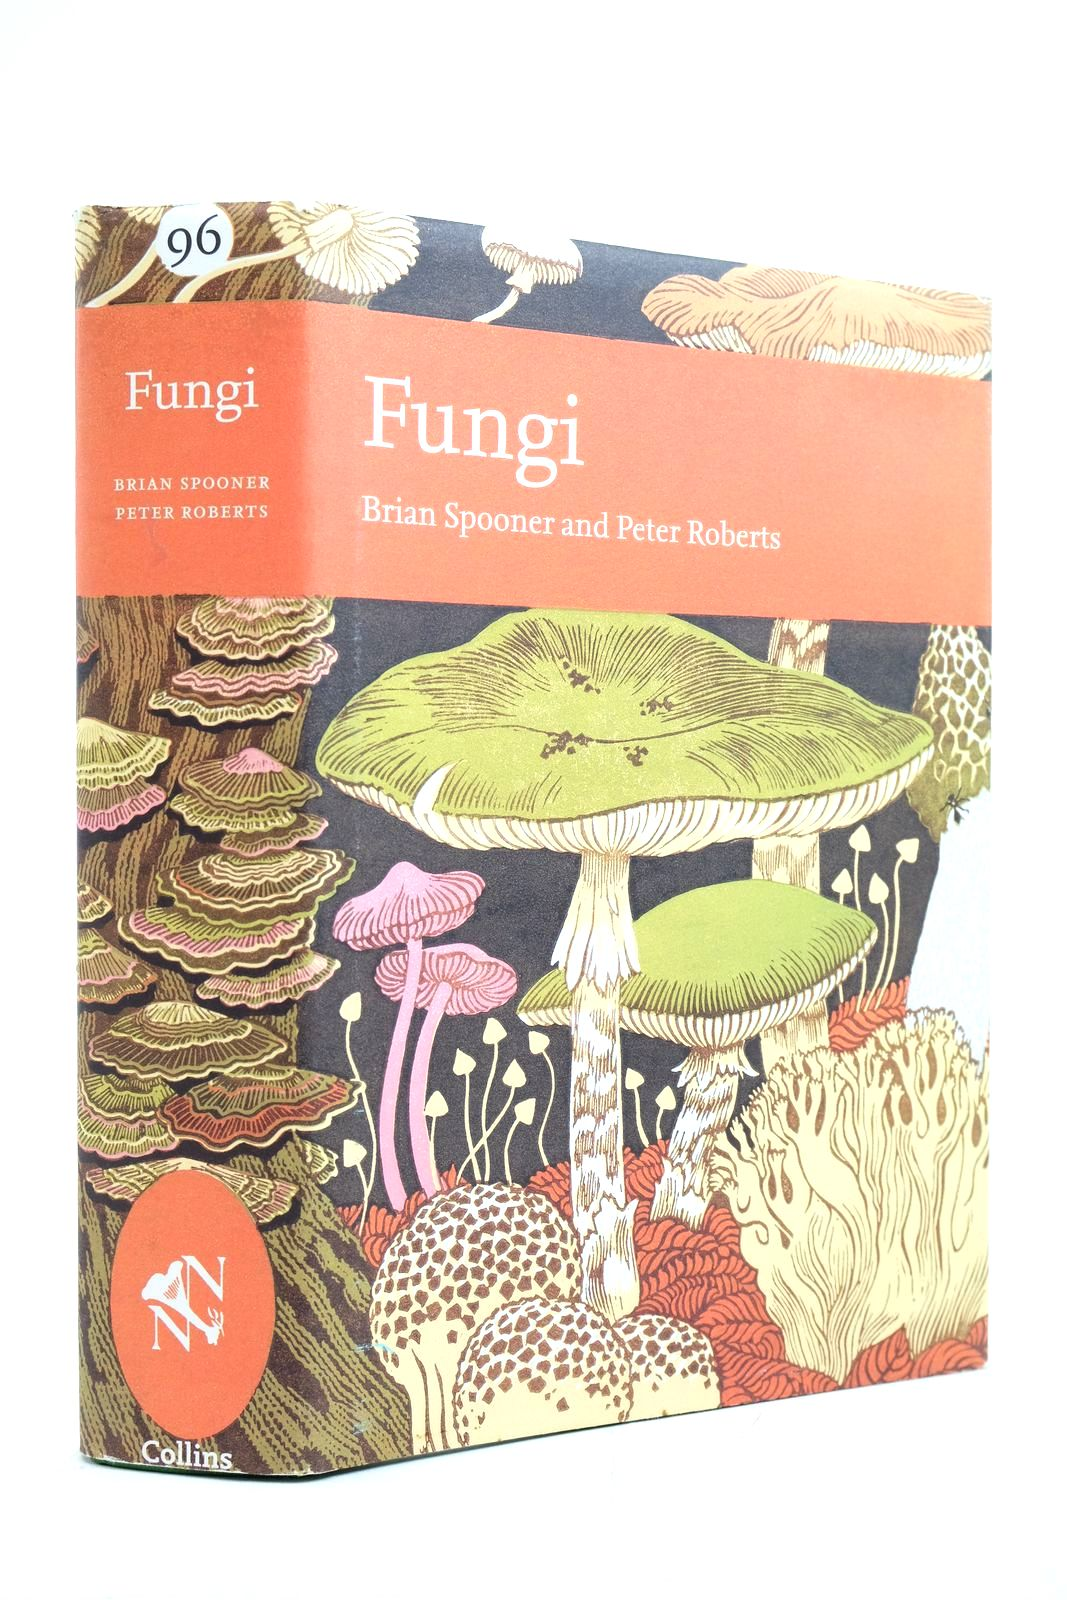 Photo of FUNGI (NN 96) written by Spooner, Brian Roberts, Peter published by Collins (STOCK CODE: 2135402)  for sale by Stella & Rose's Books